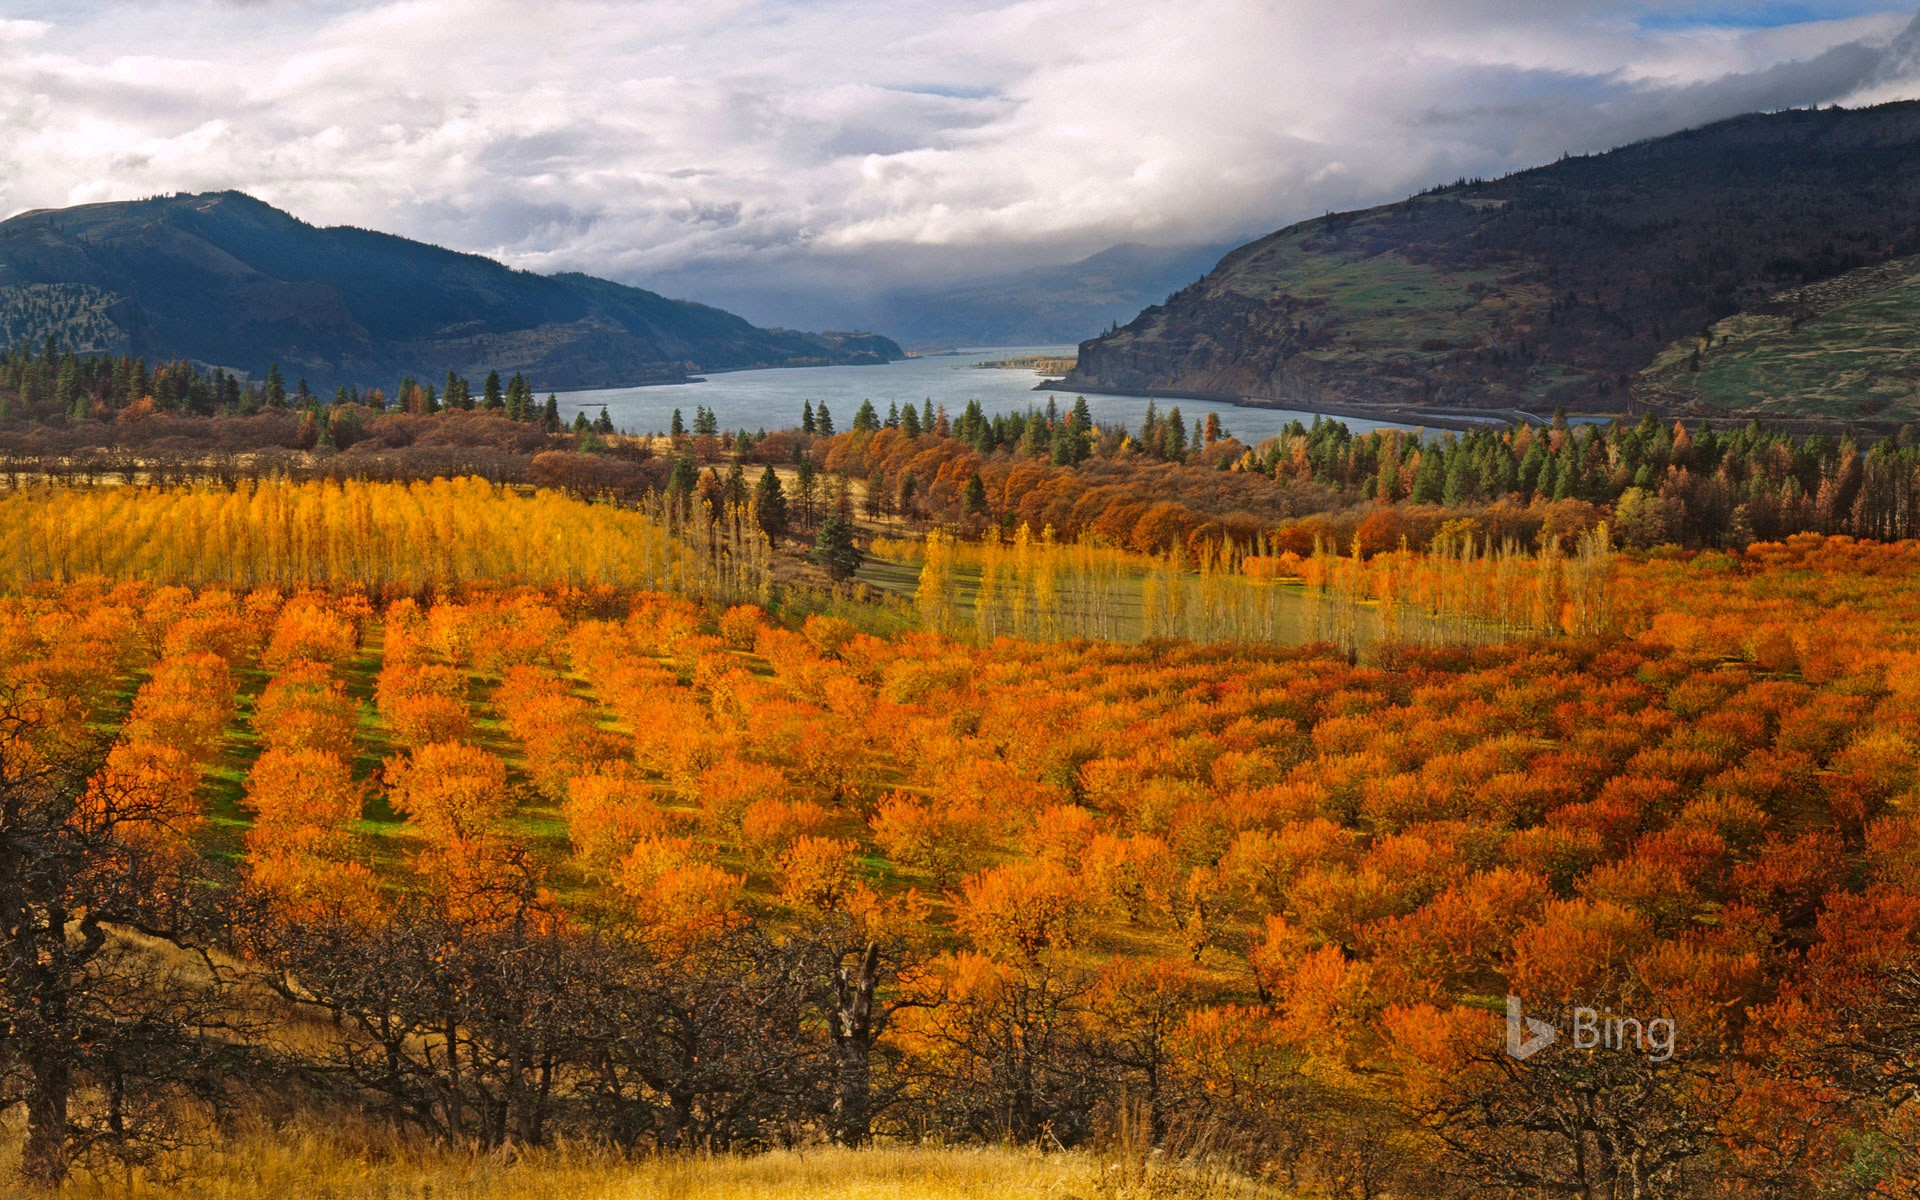 Bing Fall Desktop Wallpaper Cherry Orchards In The Columbia River Gorge National